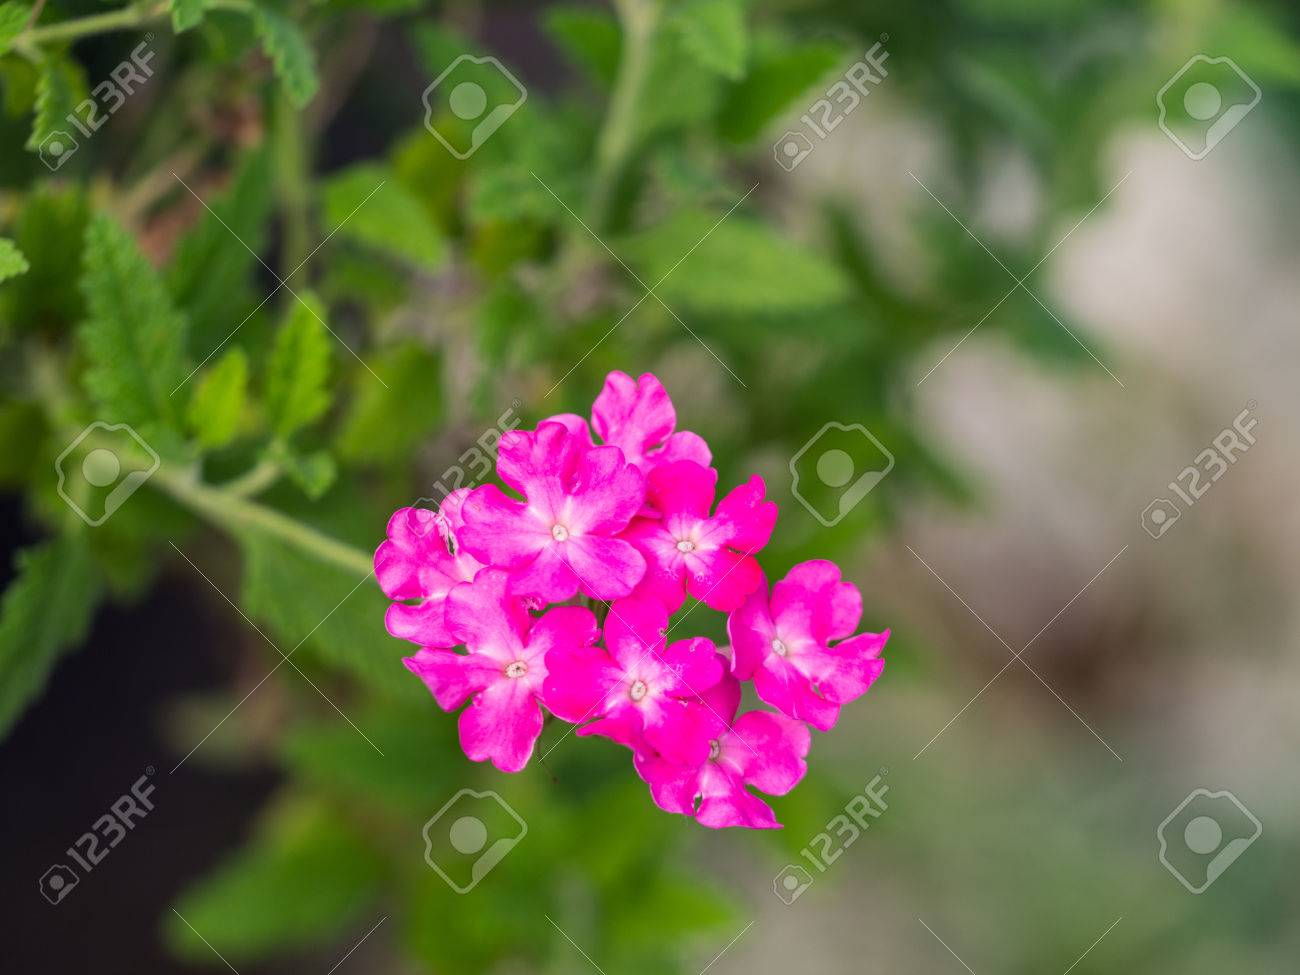 Pink Petunia Flowers Blooming Hanging In The Flower Pot Stock Photo